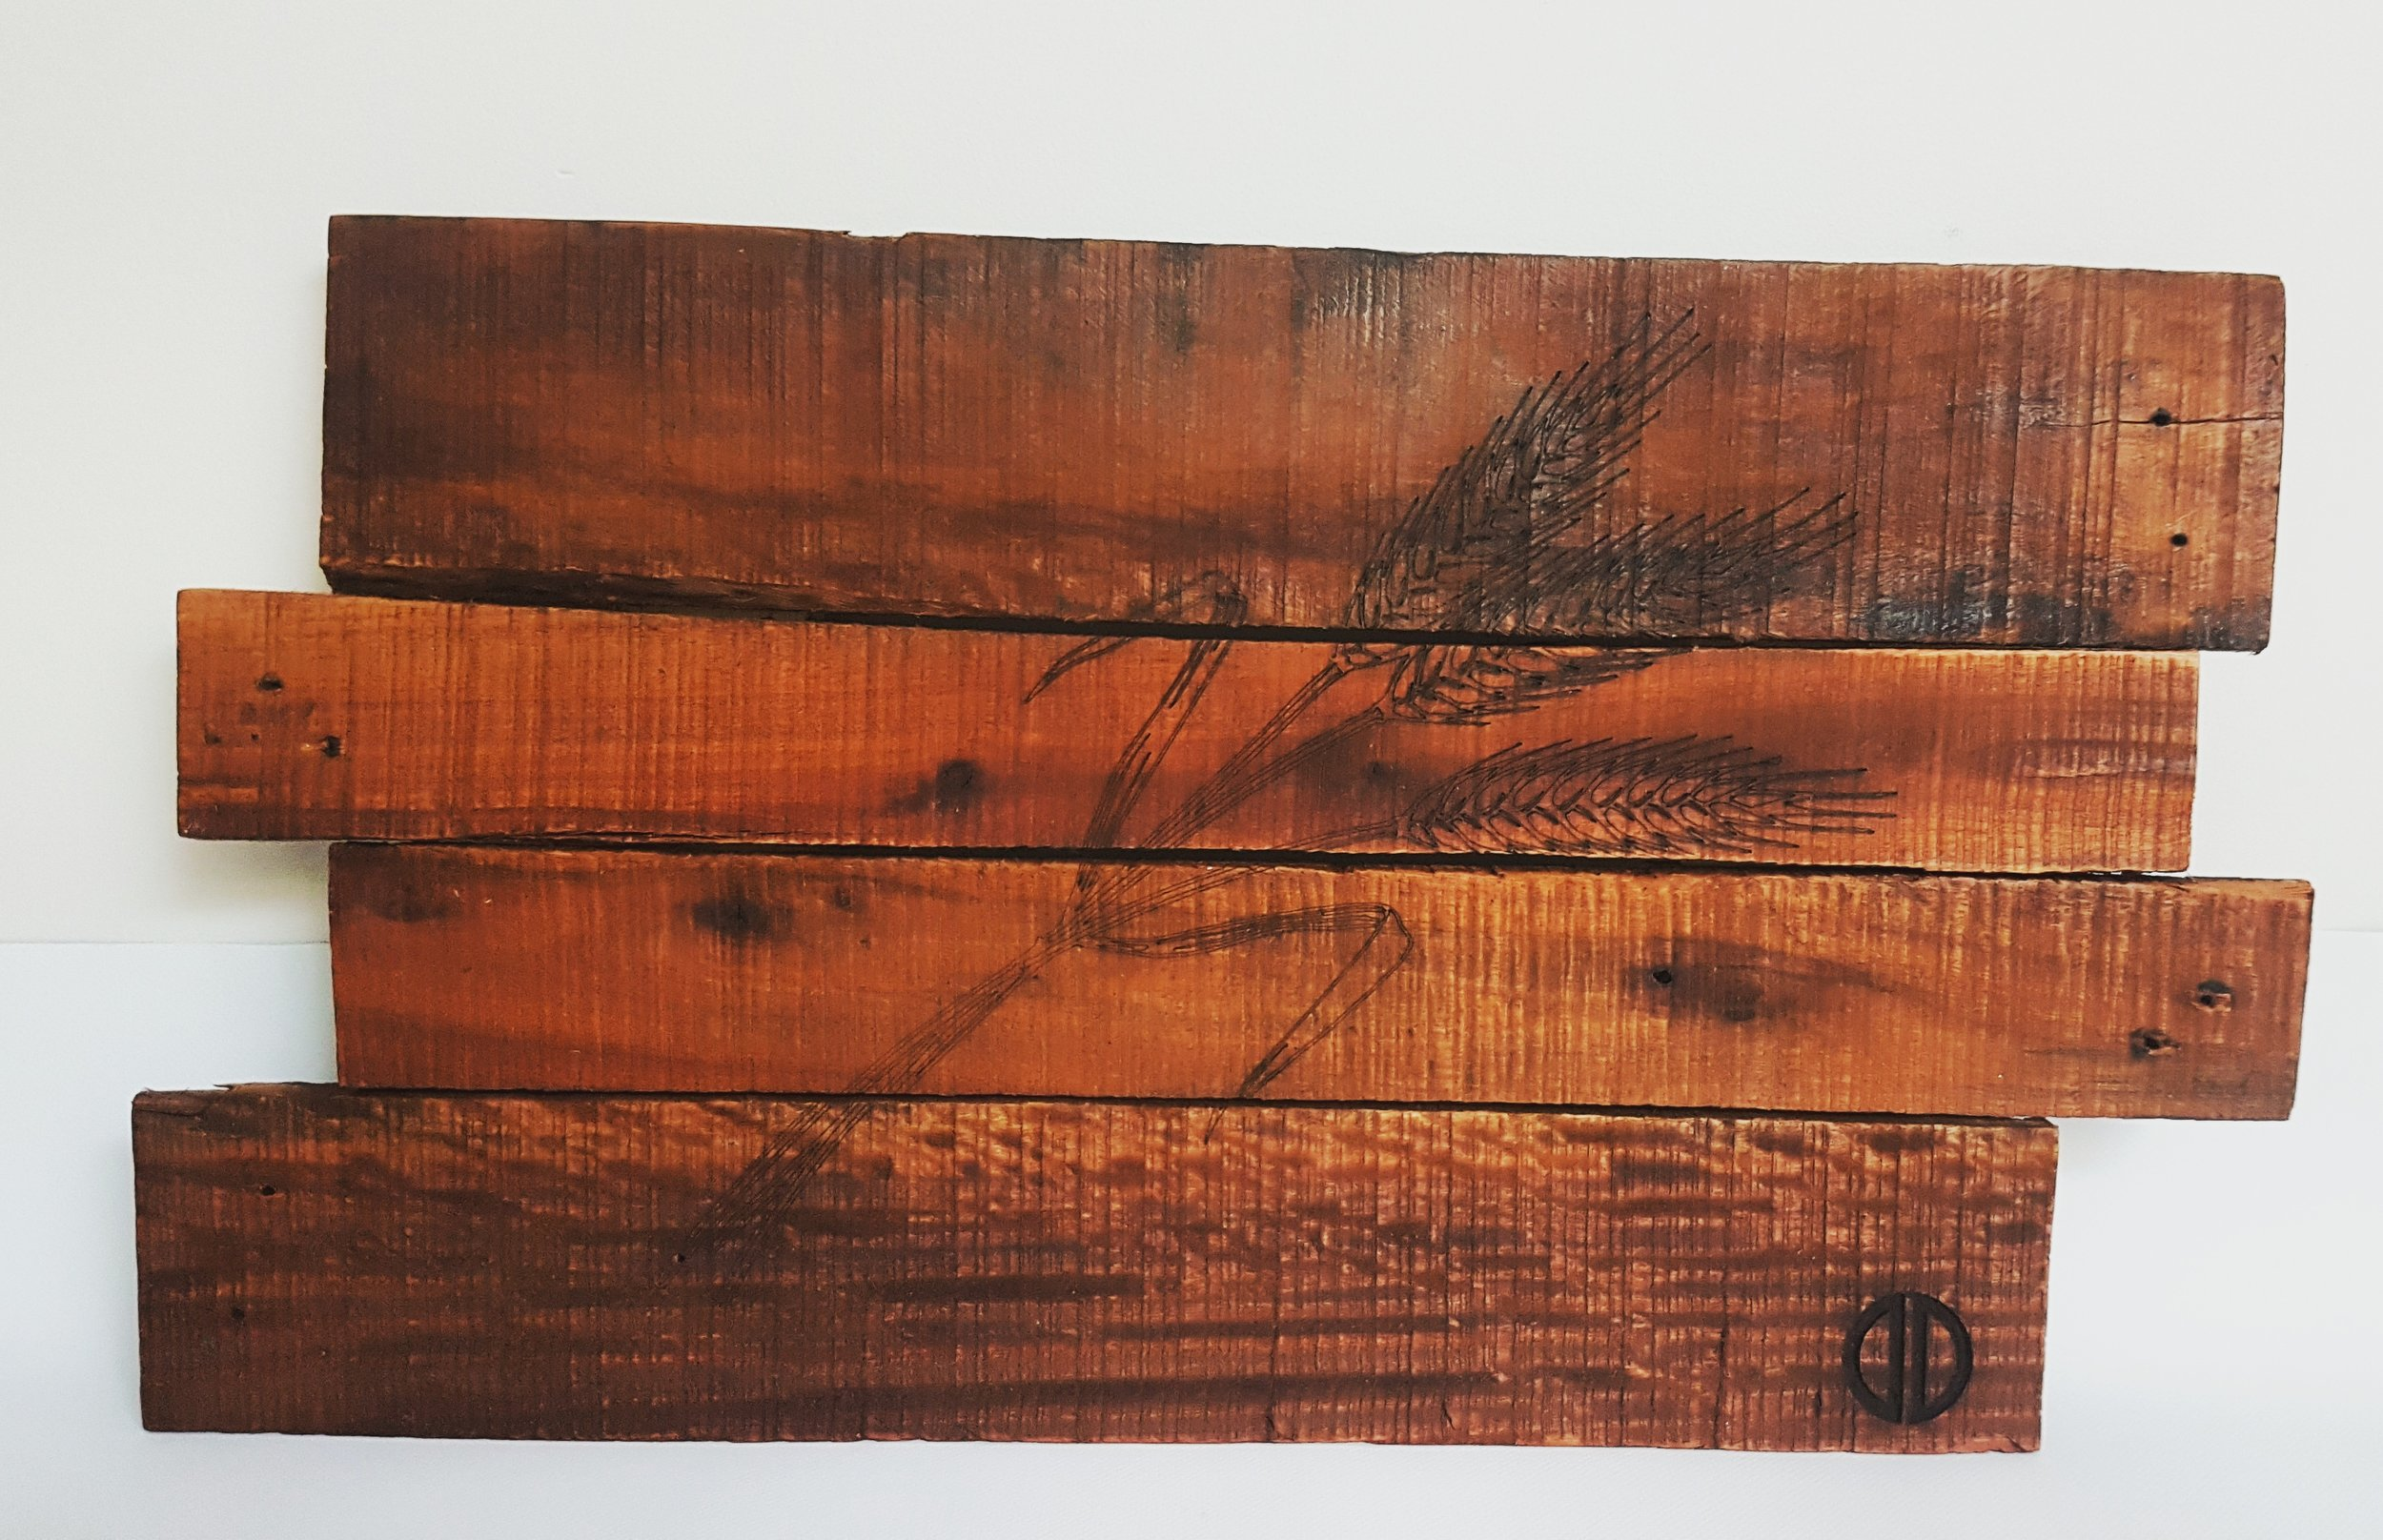 Large Laser Engraved Pieces  - Can be made from either deconstructed pallets, barn board or new lumber. These large laser engraved pieces are mountable and a real statement piece for any room.